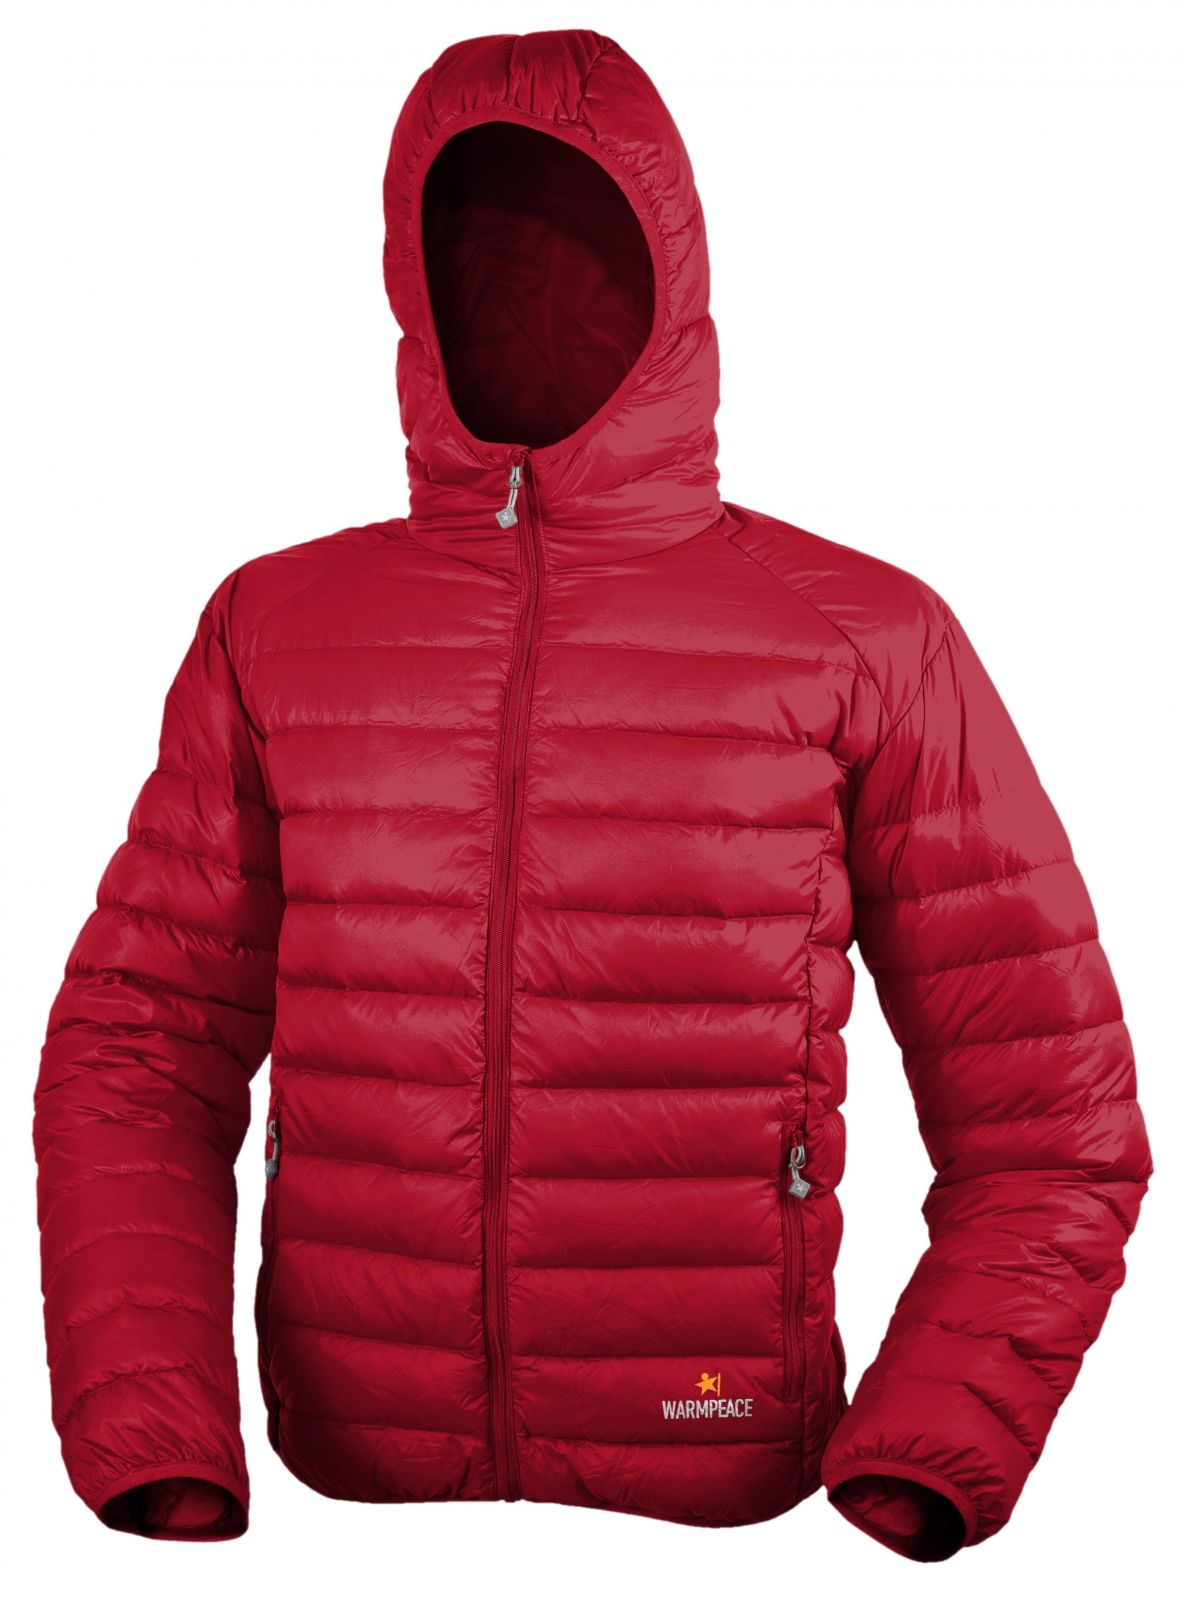 Tazz-Sport - Warmpeace Nordvik red